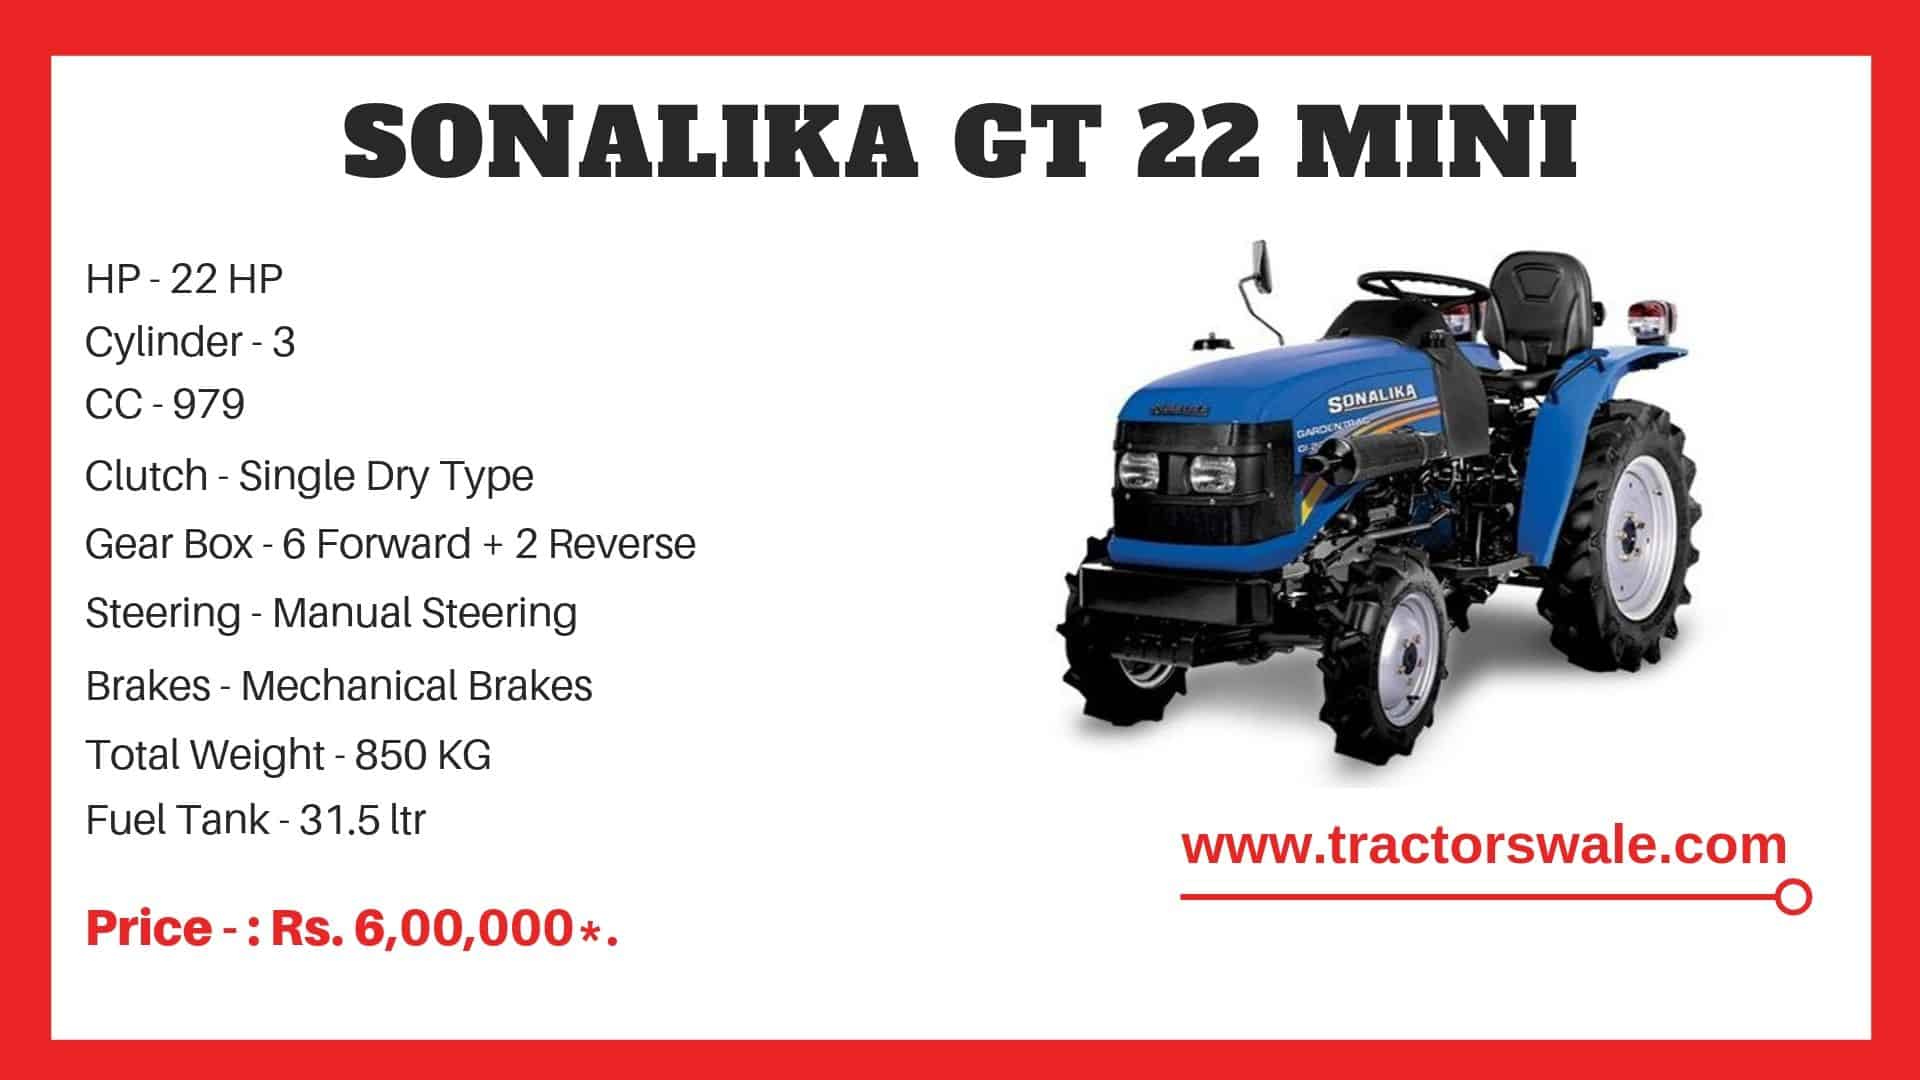 Specifications Of Sonalika GT 22 Mini Tractor